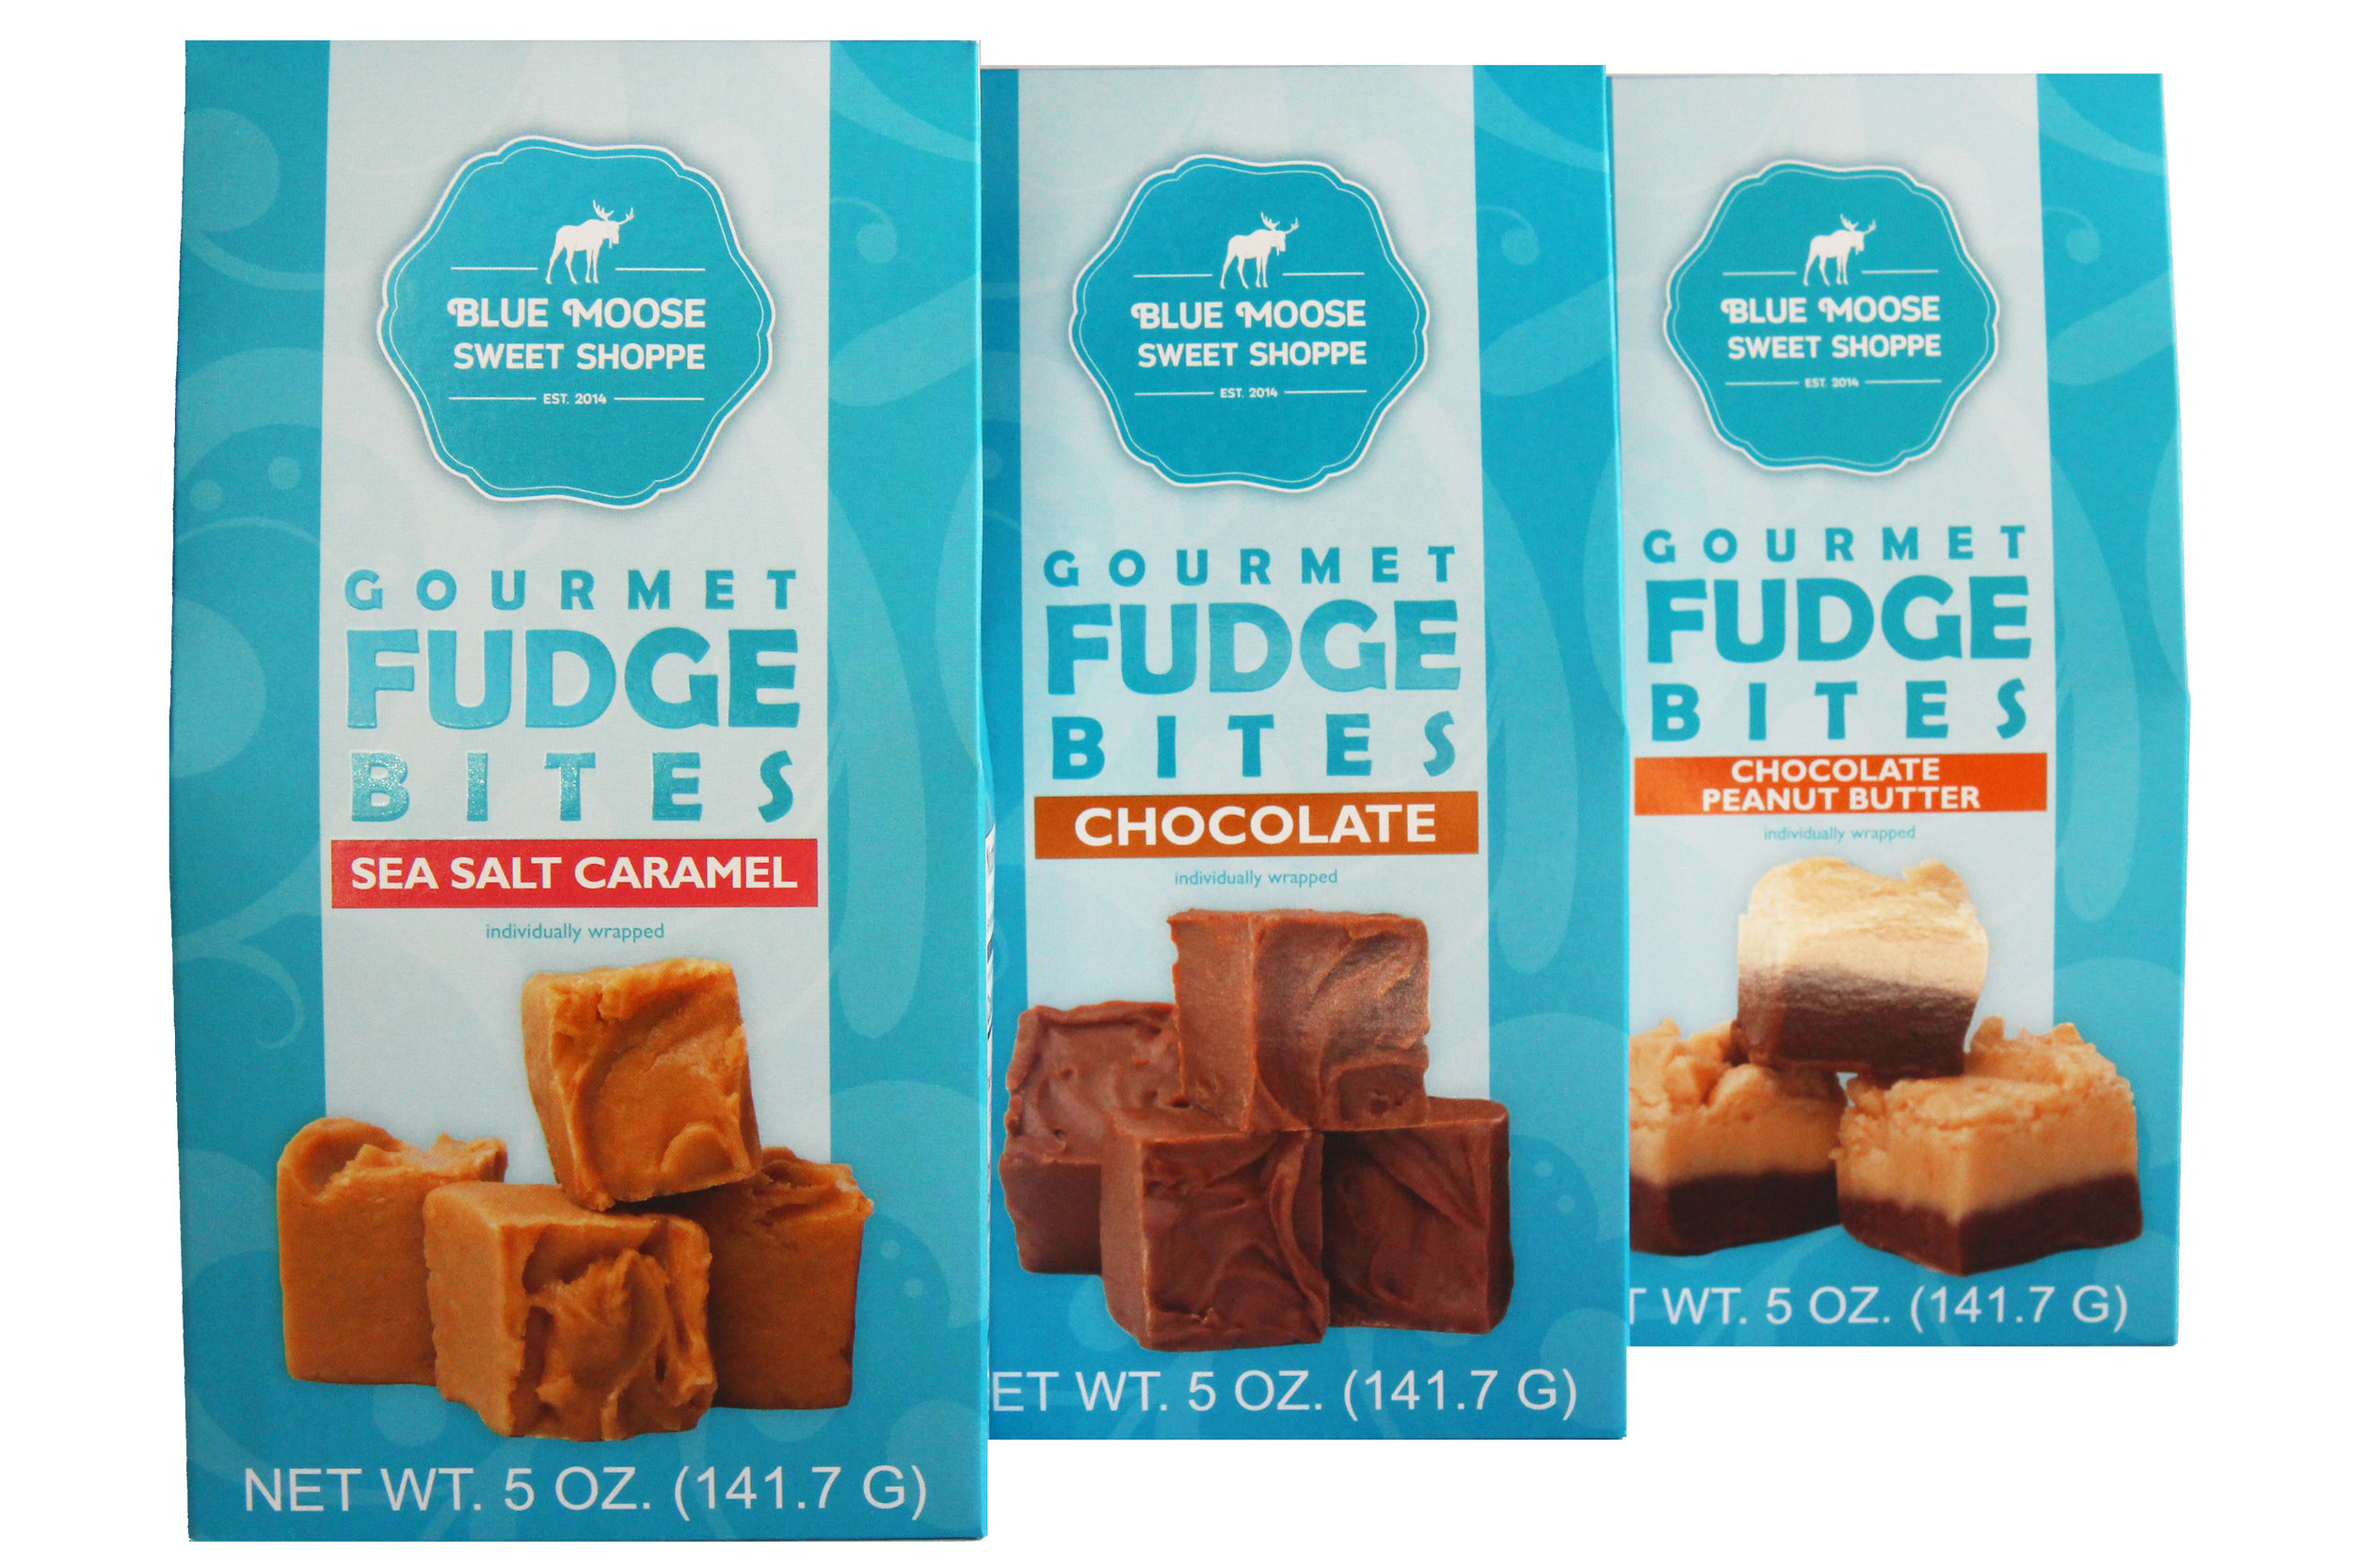 5 oz. gable boxes containing 6 individually wrapped bites of fudge goodness.